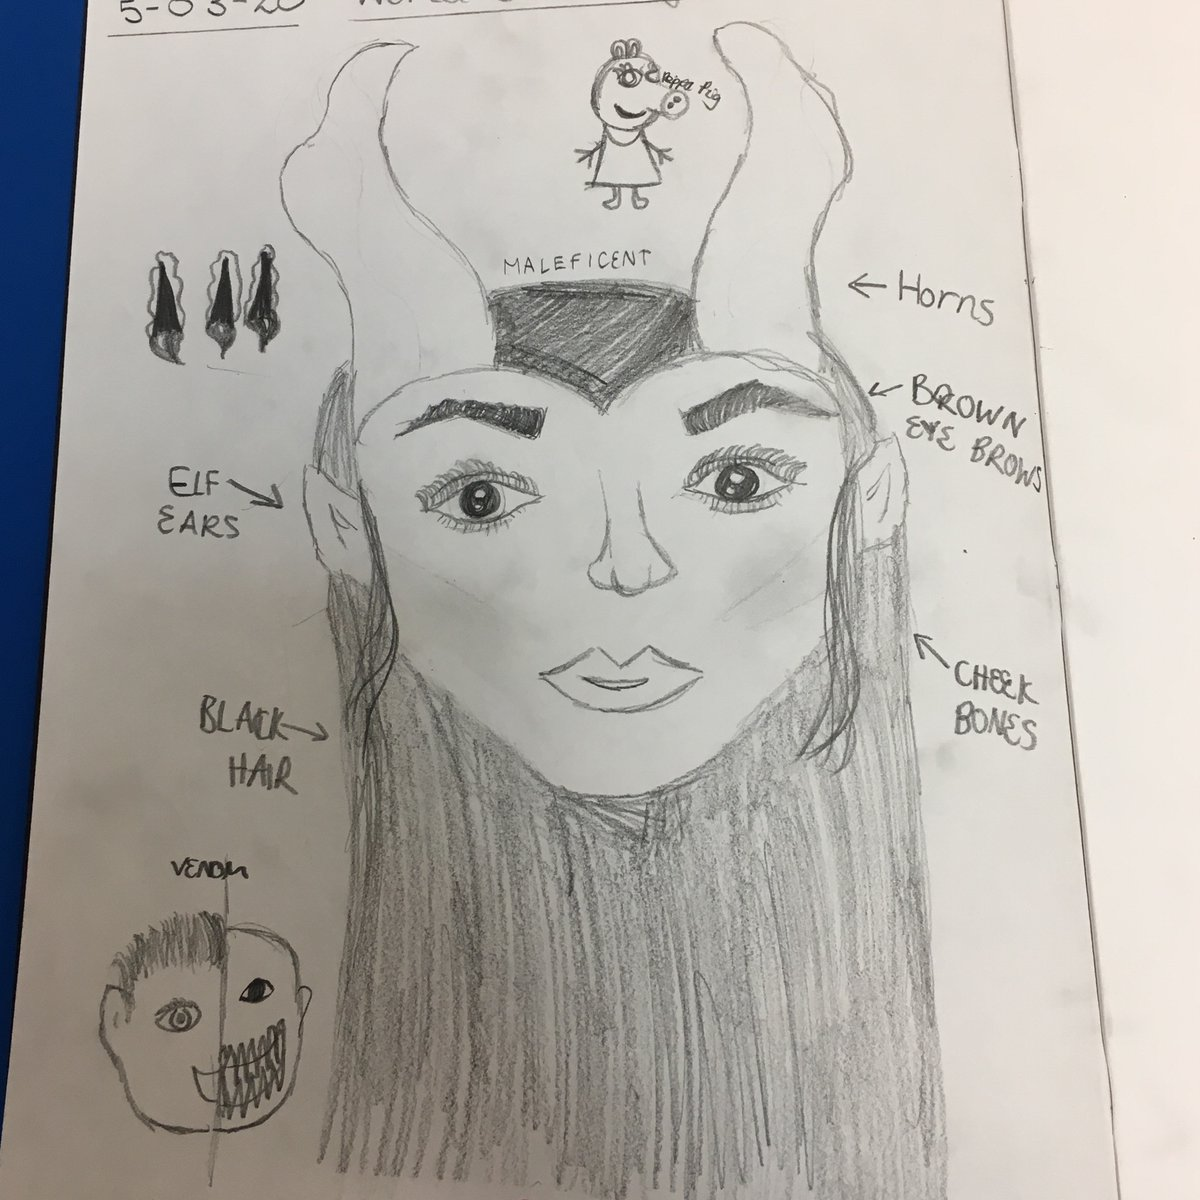 test Twitter Media - Year 6 sketched their World Book Day characters in their sketch books this afternoon. Can you work out who they came as? #WorldBookDay2020 #ShareAStory #readingispower https://t.co/wisj0mCzym